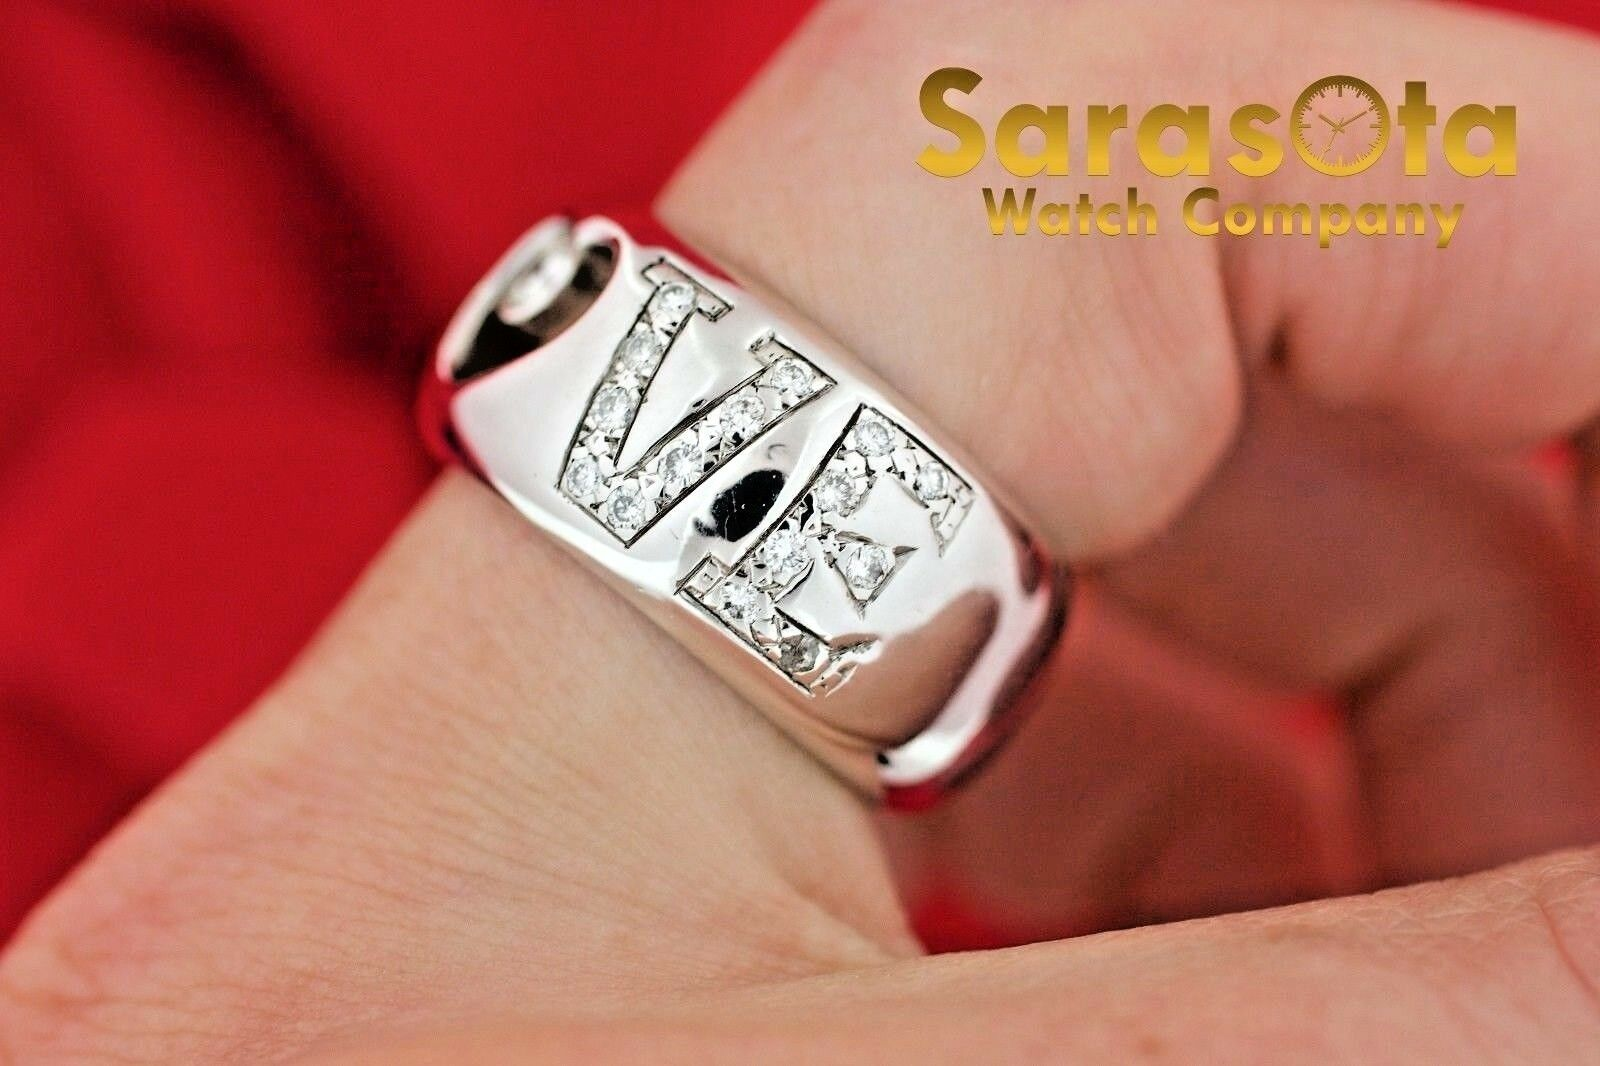 14K White Gold 030Ct HSI1 Diamond LOVE 11mm Wide Band Womens Ring Size 8 122030768416 9